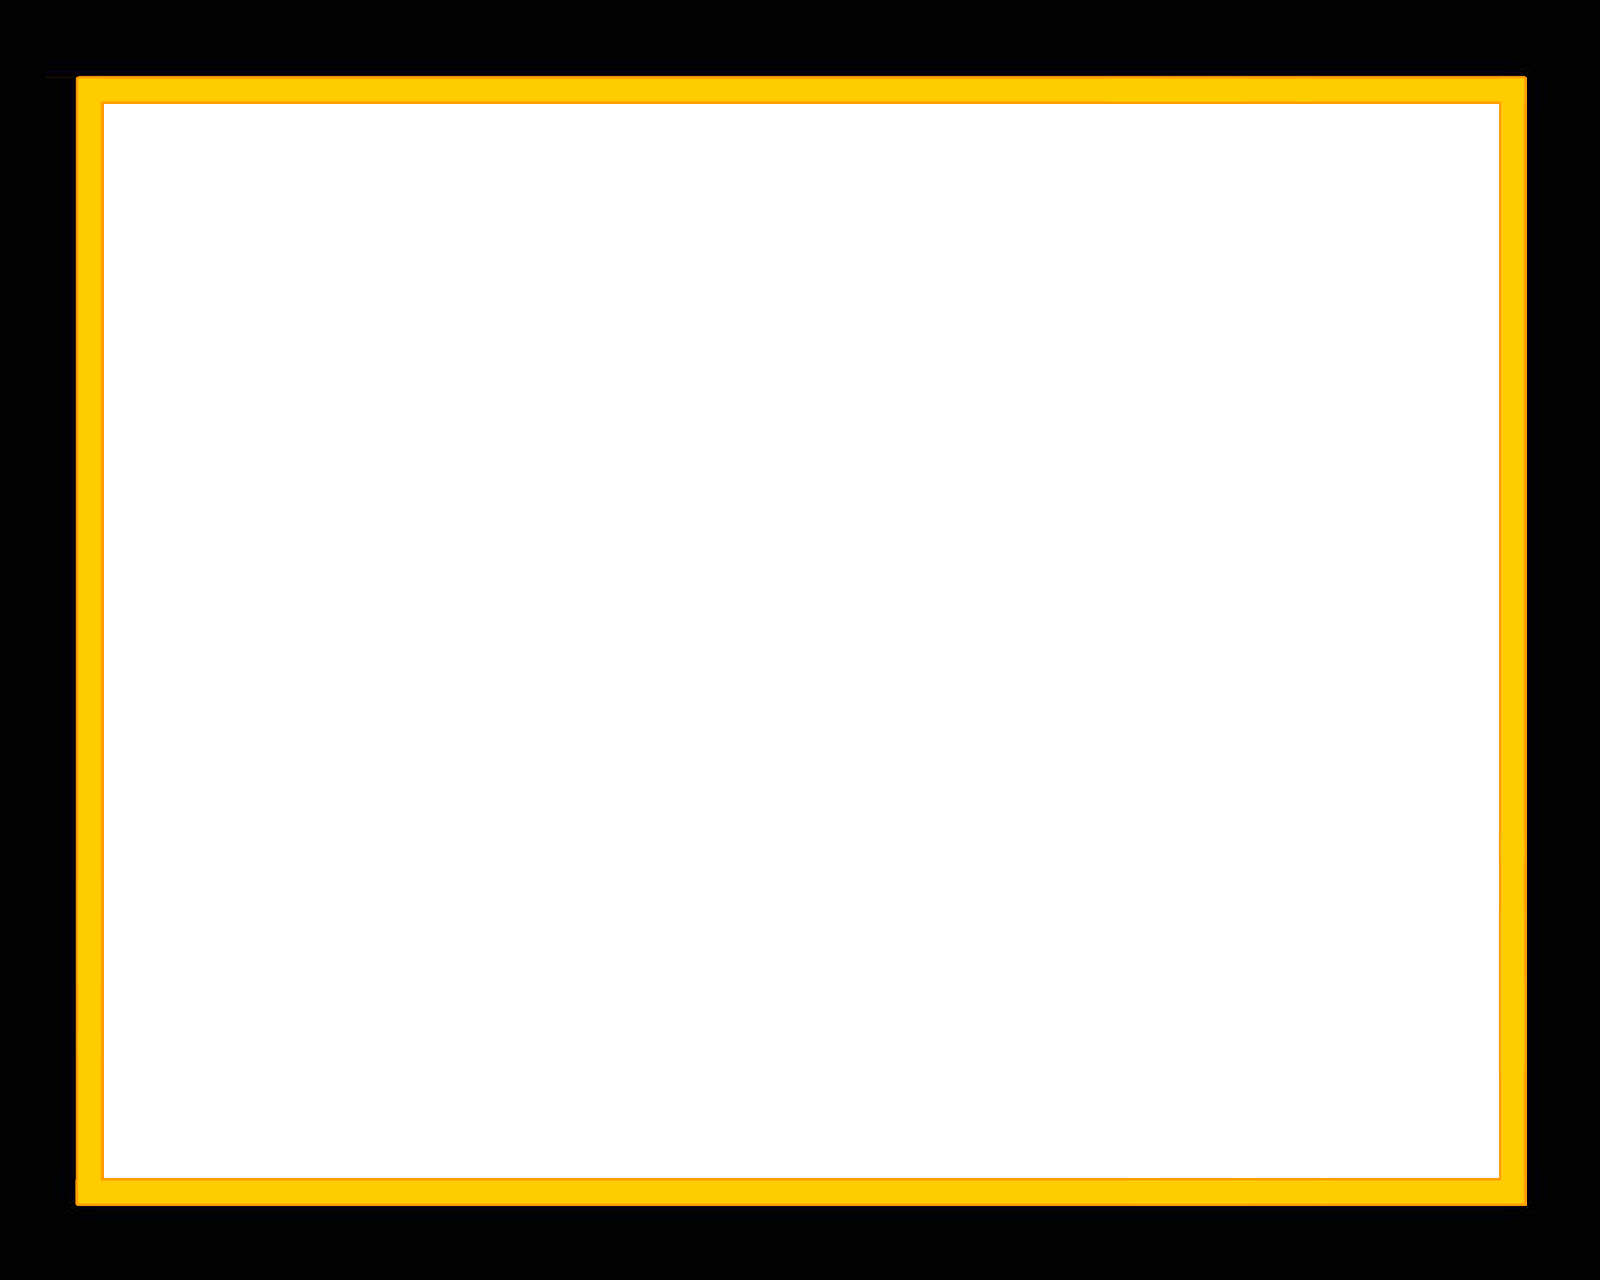 Yellow Frame Png - Yellow Border Frame Transparent PNG   PNG Mart